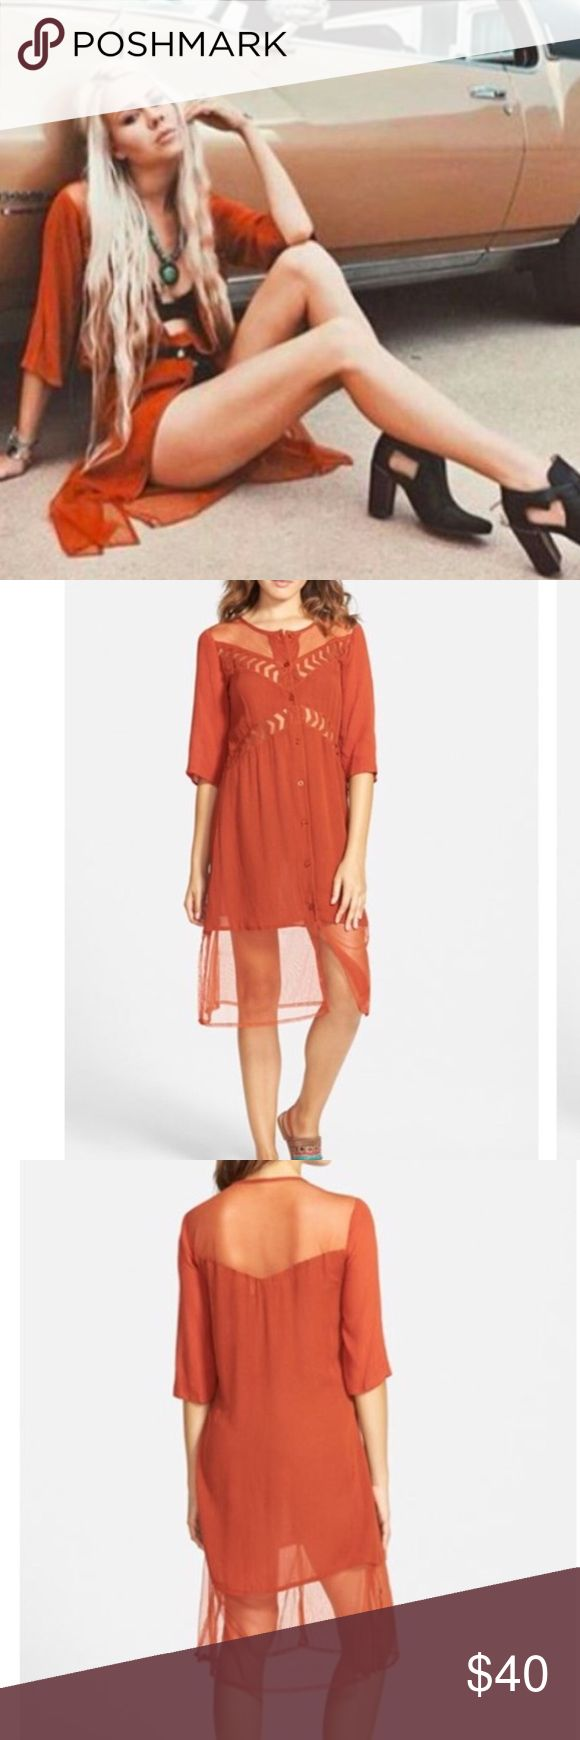 """Volcom Highway Child Boho Midi Dress Volcom Highway Child Boho Midi Dress. Sheer insets at the yoke and contrast hem lend flirty, skin-baring details to a shirtdress framed with chic elbow sleeves in this unique, super boho rusty color. Front button closure. 100% viscose. Approx. 40"""" long. Armpit to armpit approx. 18"""" across laying flat. Definitely has an oversized feel, so I think it'd work for XS-S IMO. Stock photo from Volcom catalogue shoot. Volcom Dresses Midi"""